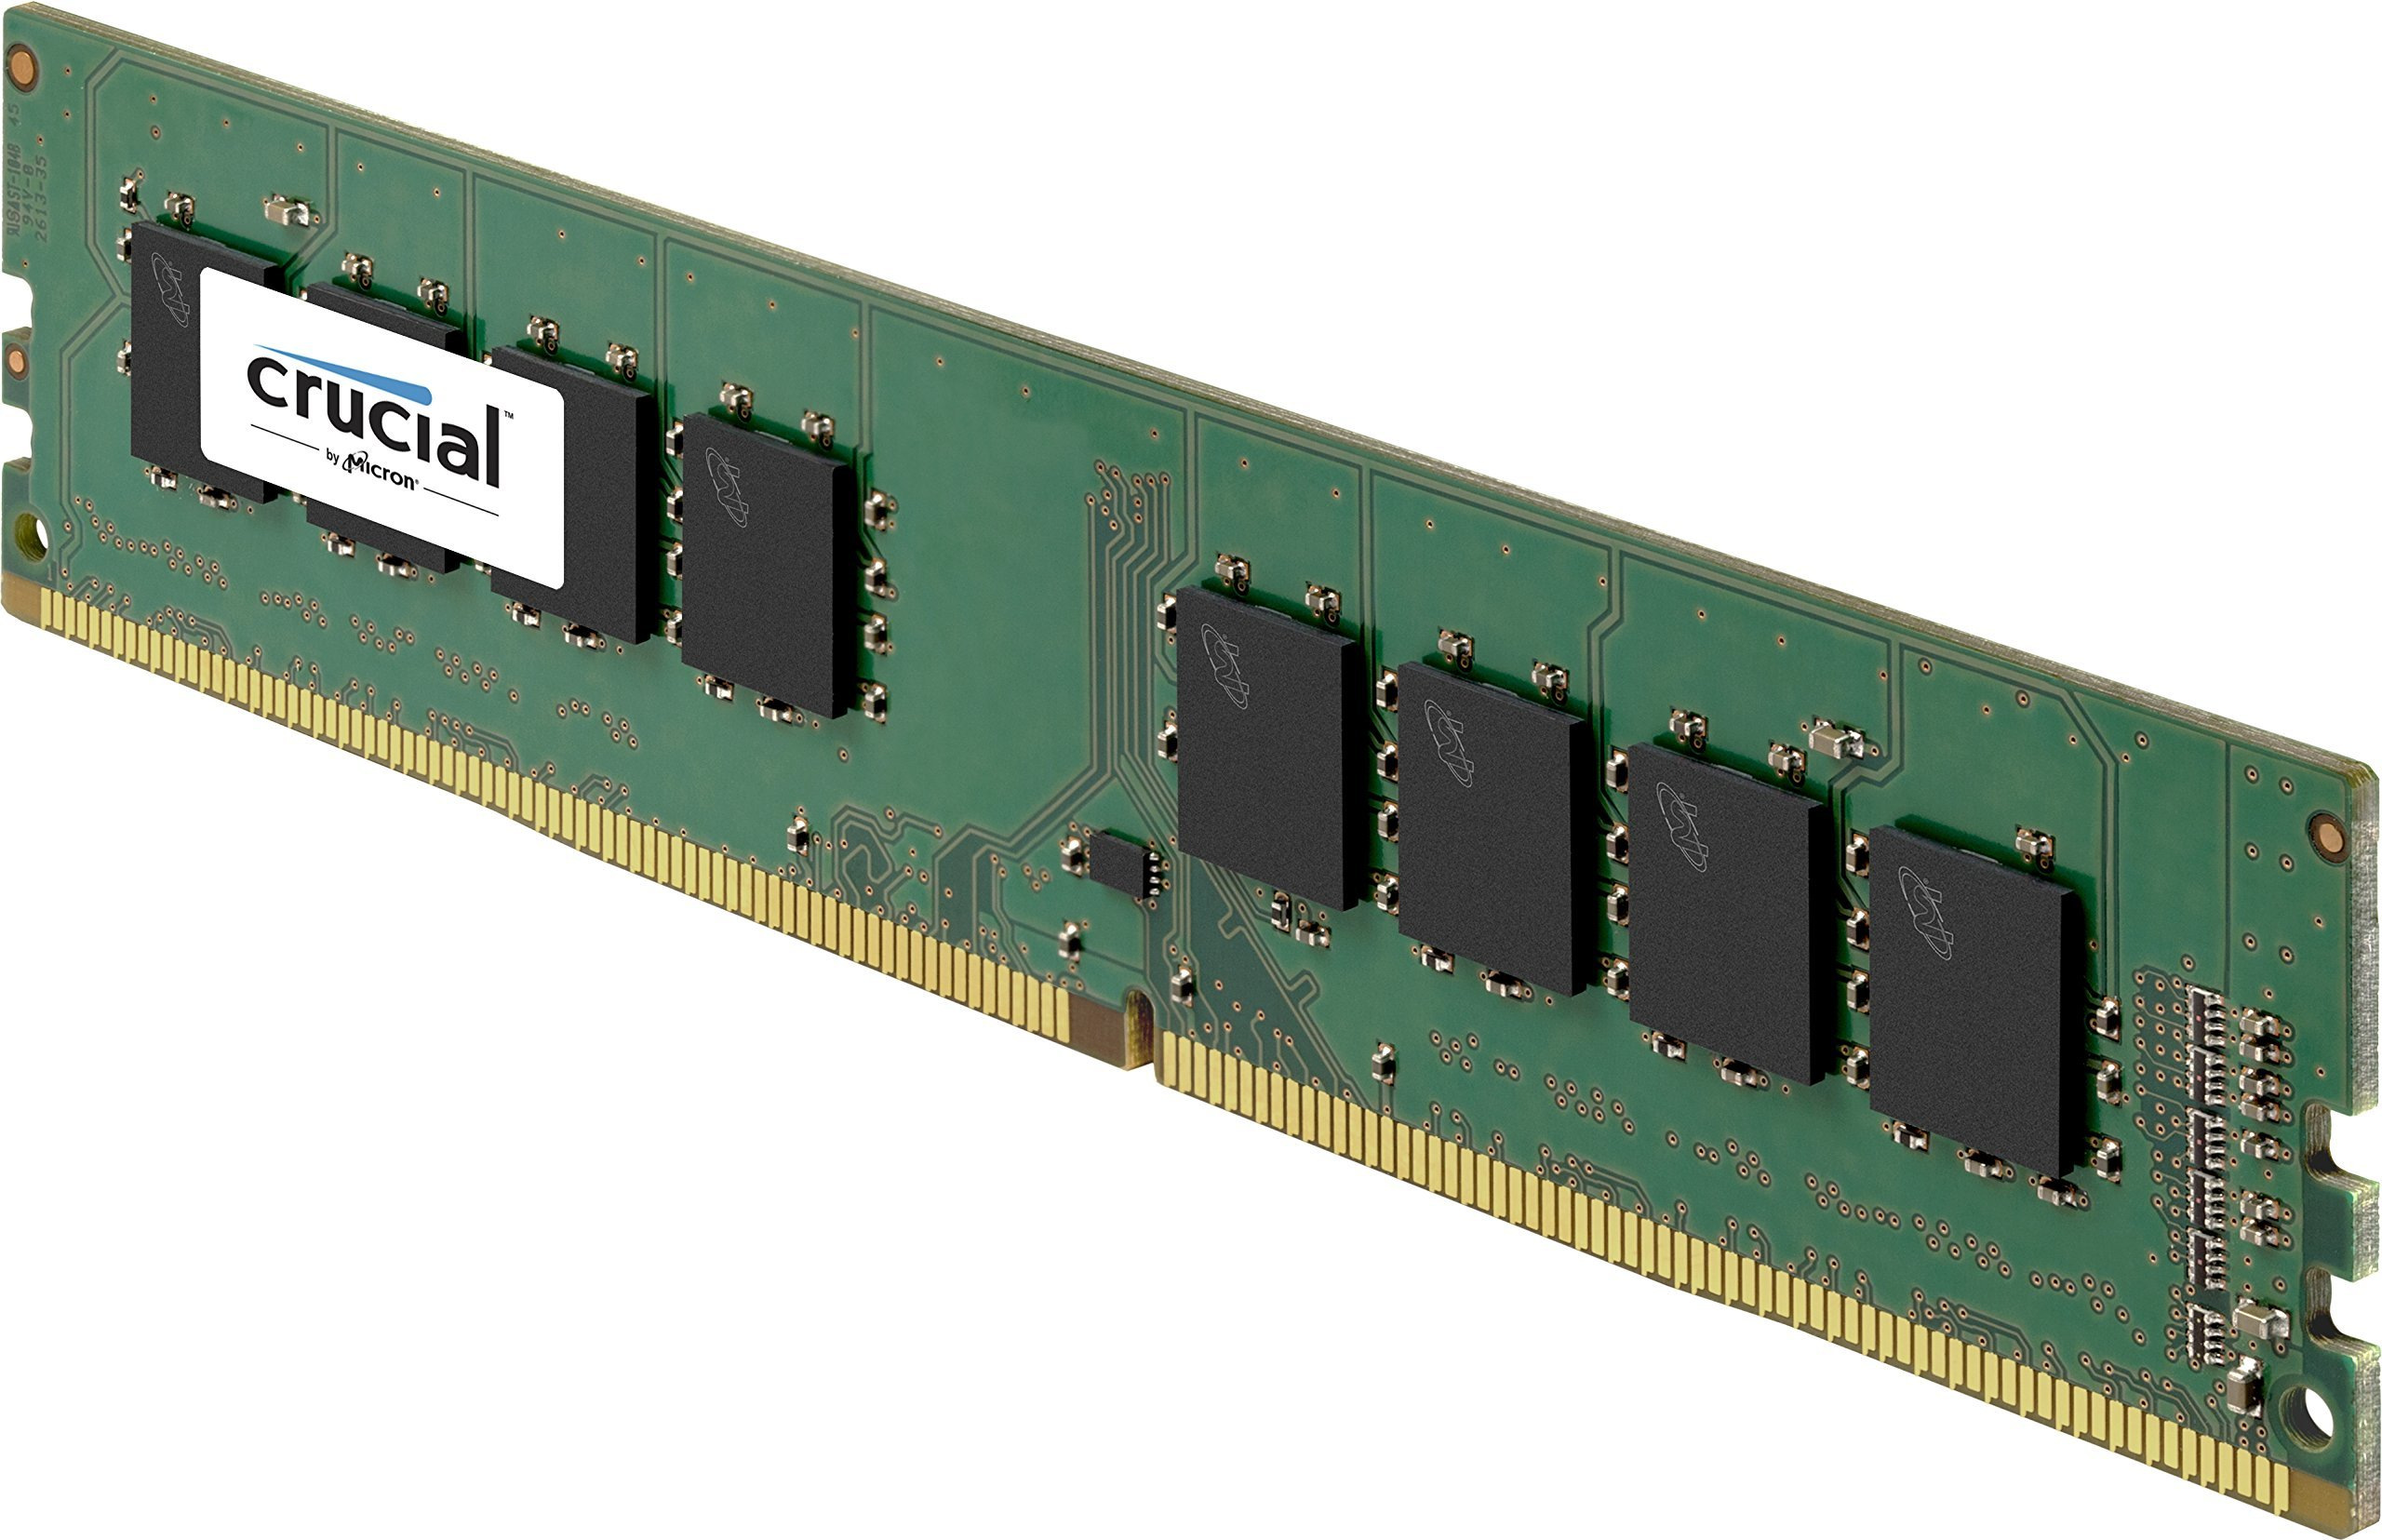 Crucial 8GB Single DDR4 2133 MT/s (PC4-17000) SR x8 Unbuffered DIMM 288-Pin Memory - CT8G4DFS8213 by Crucial